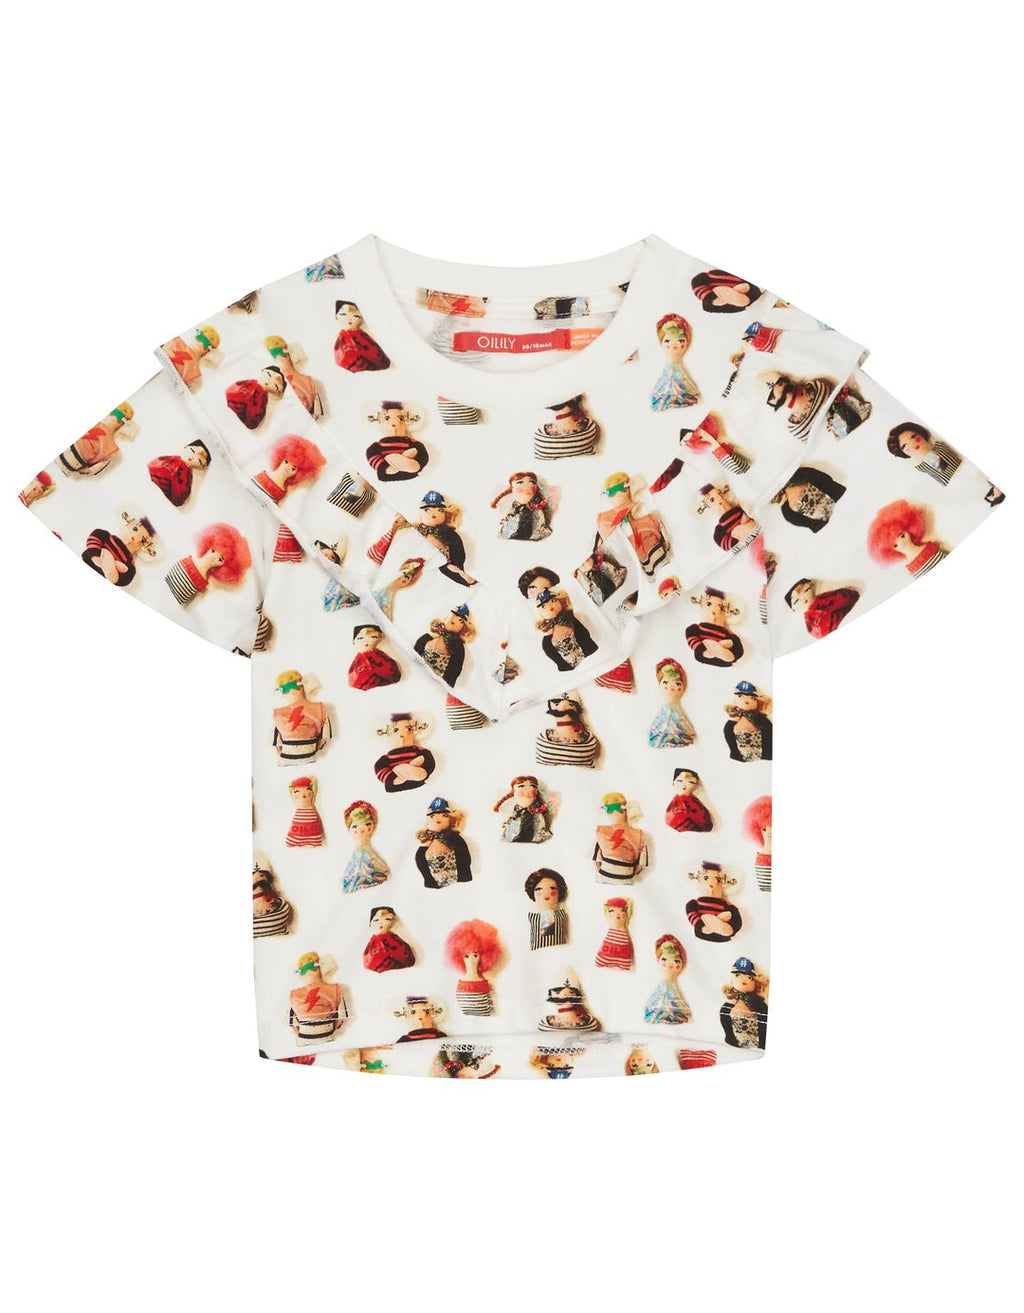 SS19 Oilily Girls Tol Short Sleeve Top 02 Urban Urk Dolls